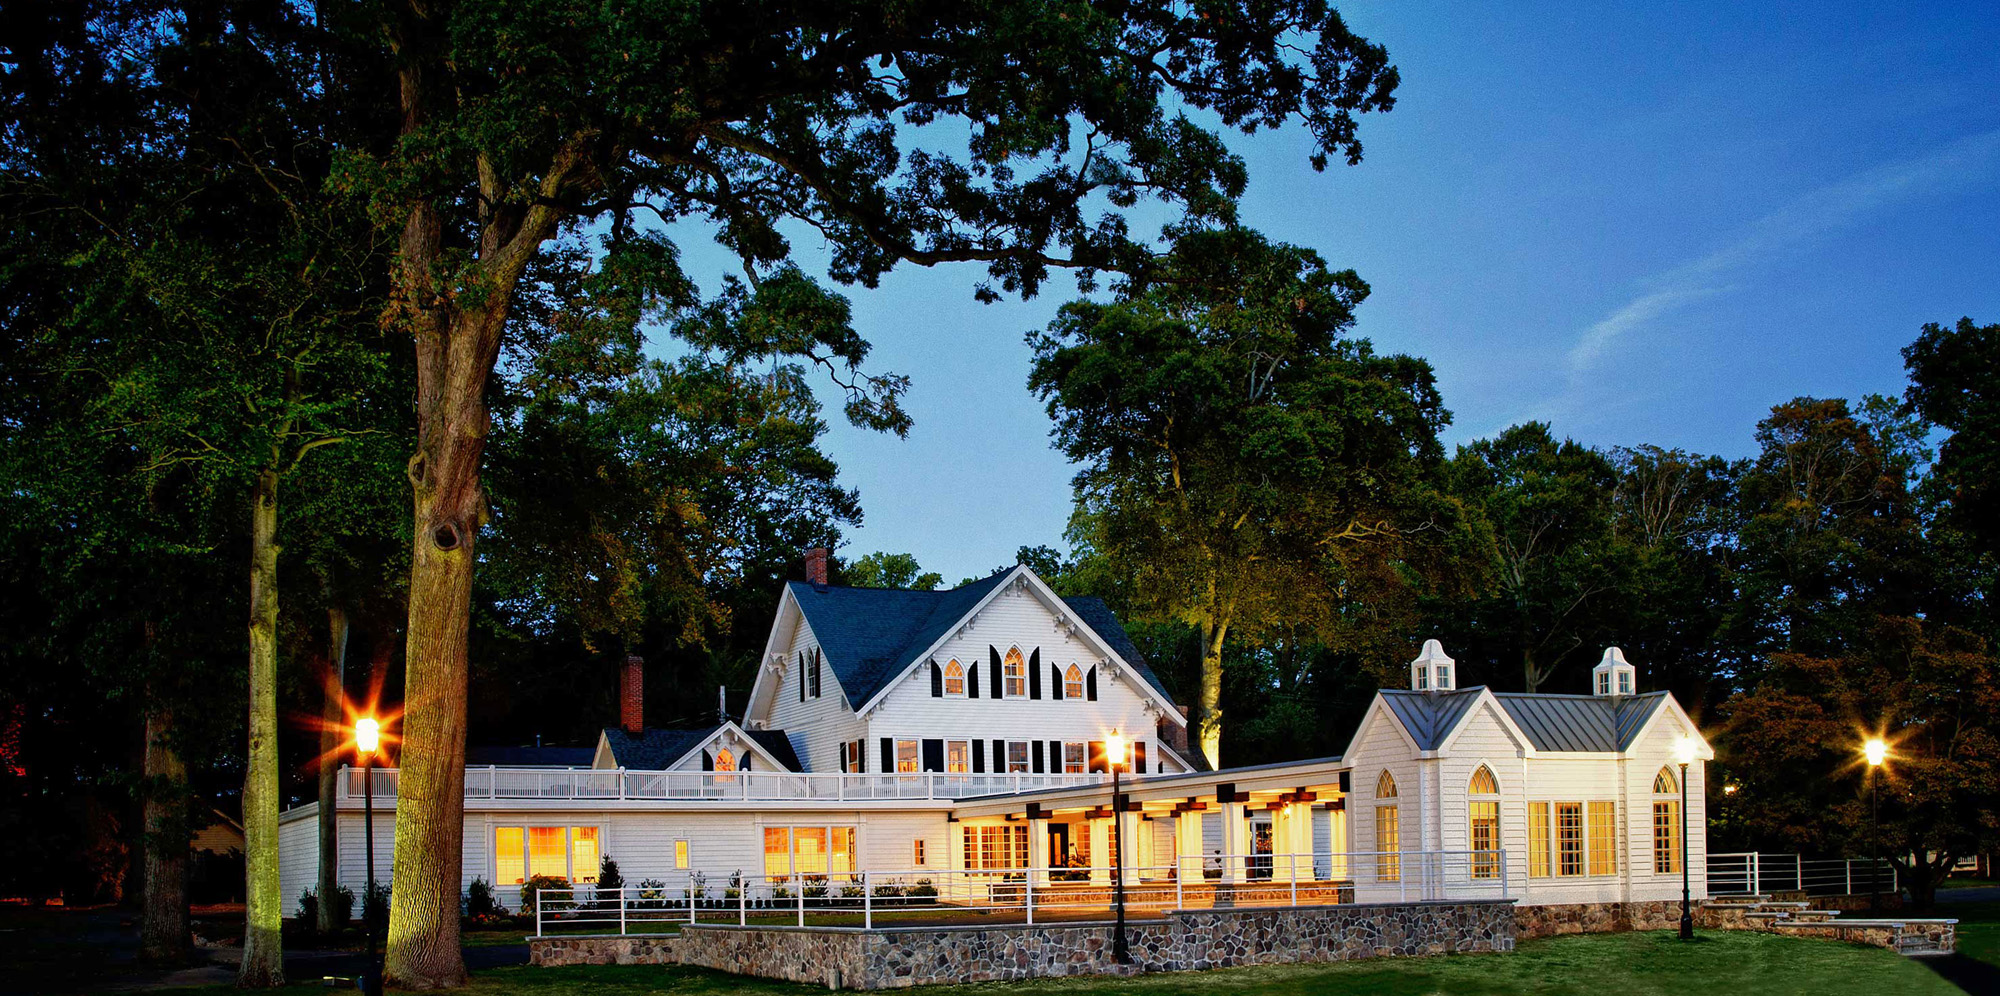 The Ryland Inn Romantic Estate Wedding Venue In Nj